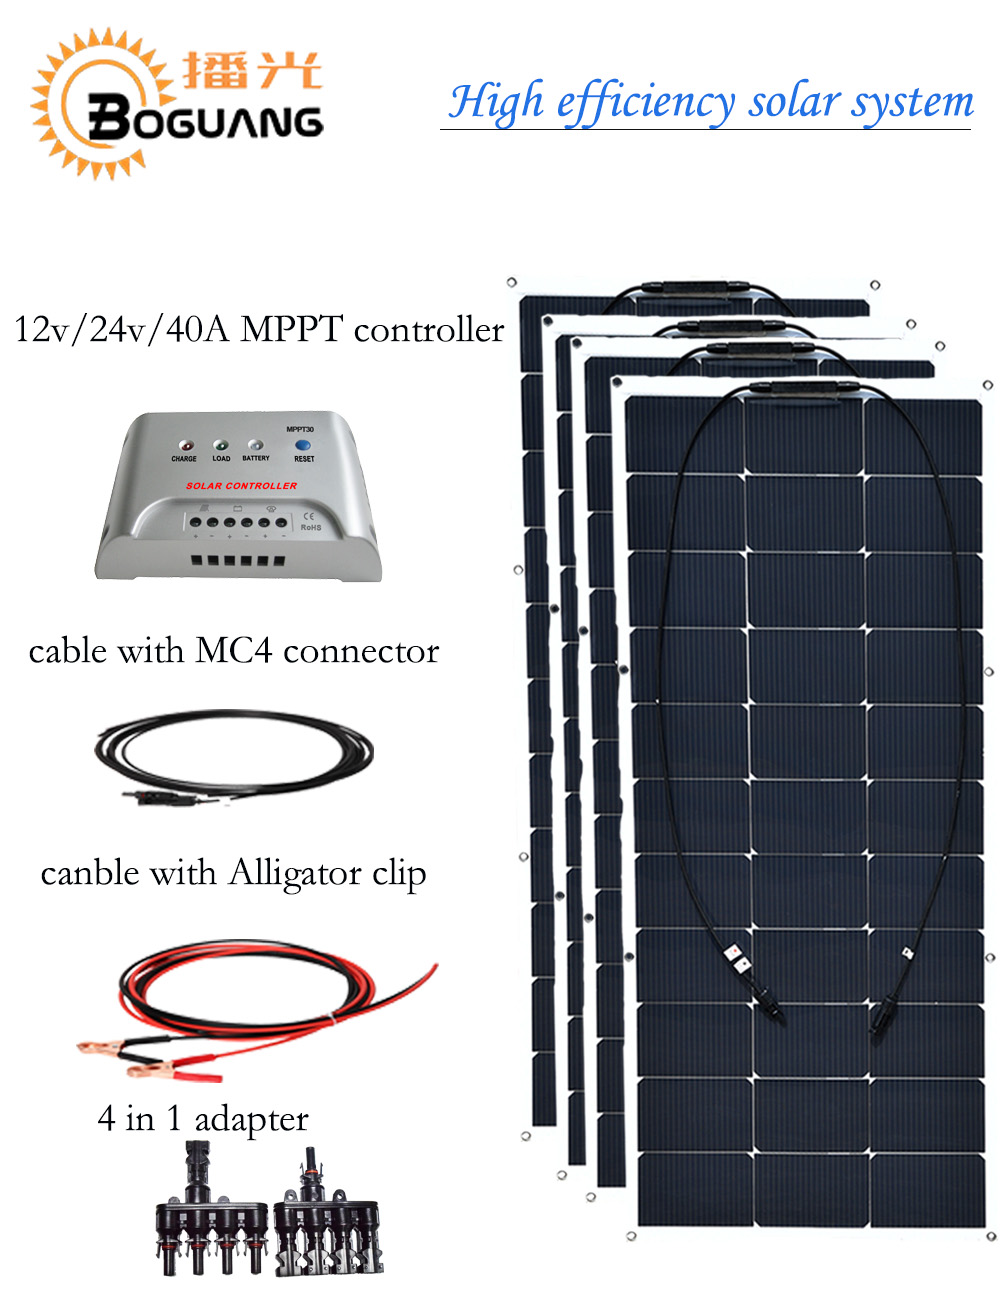 BOGUANG solar system 400w flexible solar panel 100w solar module cell 12v DIY kit for battery light RV Yacht home charge 2pcs 4pcs mono 20v 100w flexible solar panel modules for fishing boat car rv 12v battery solar charger 36 solar cells 100w